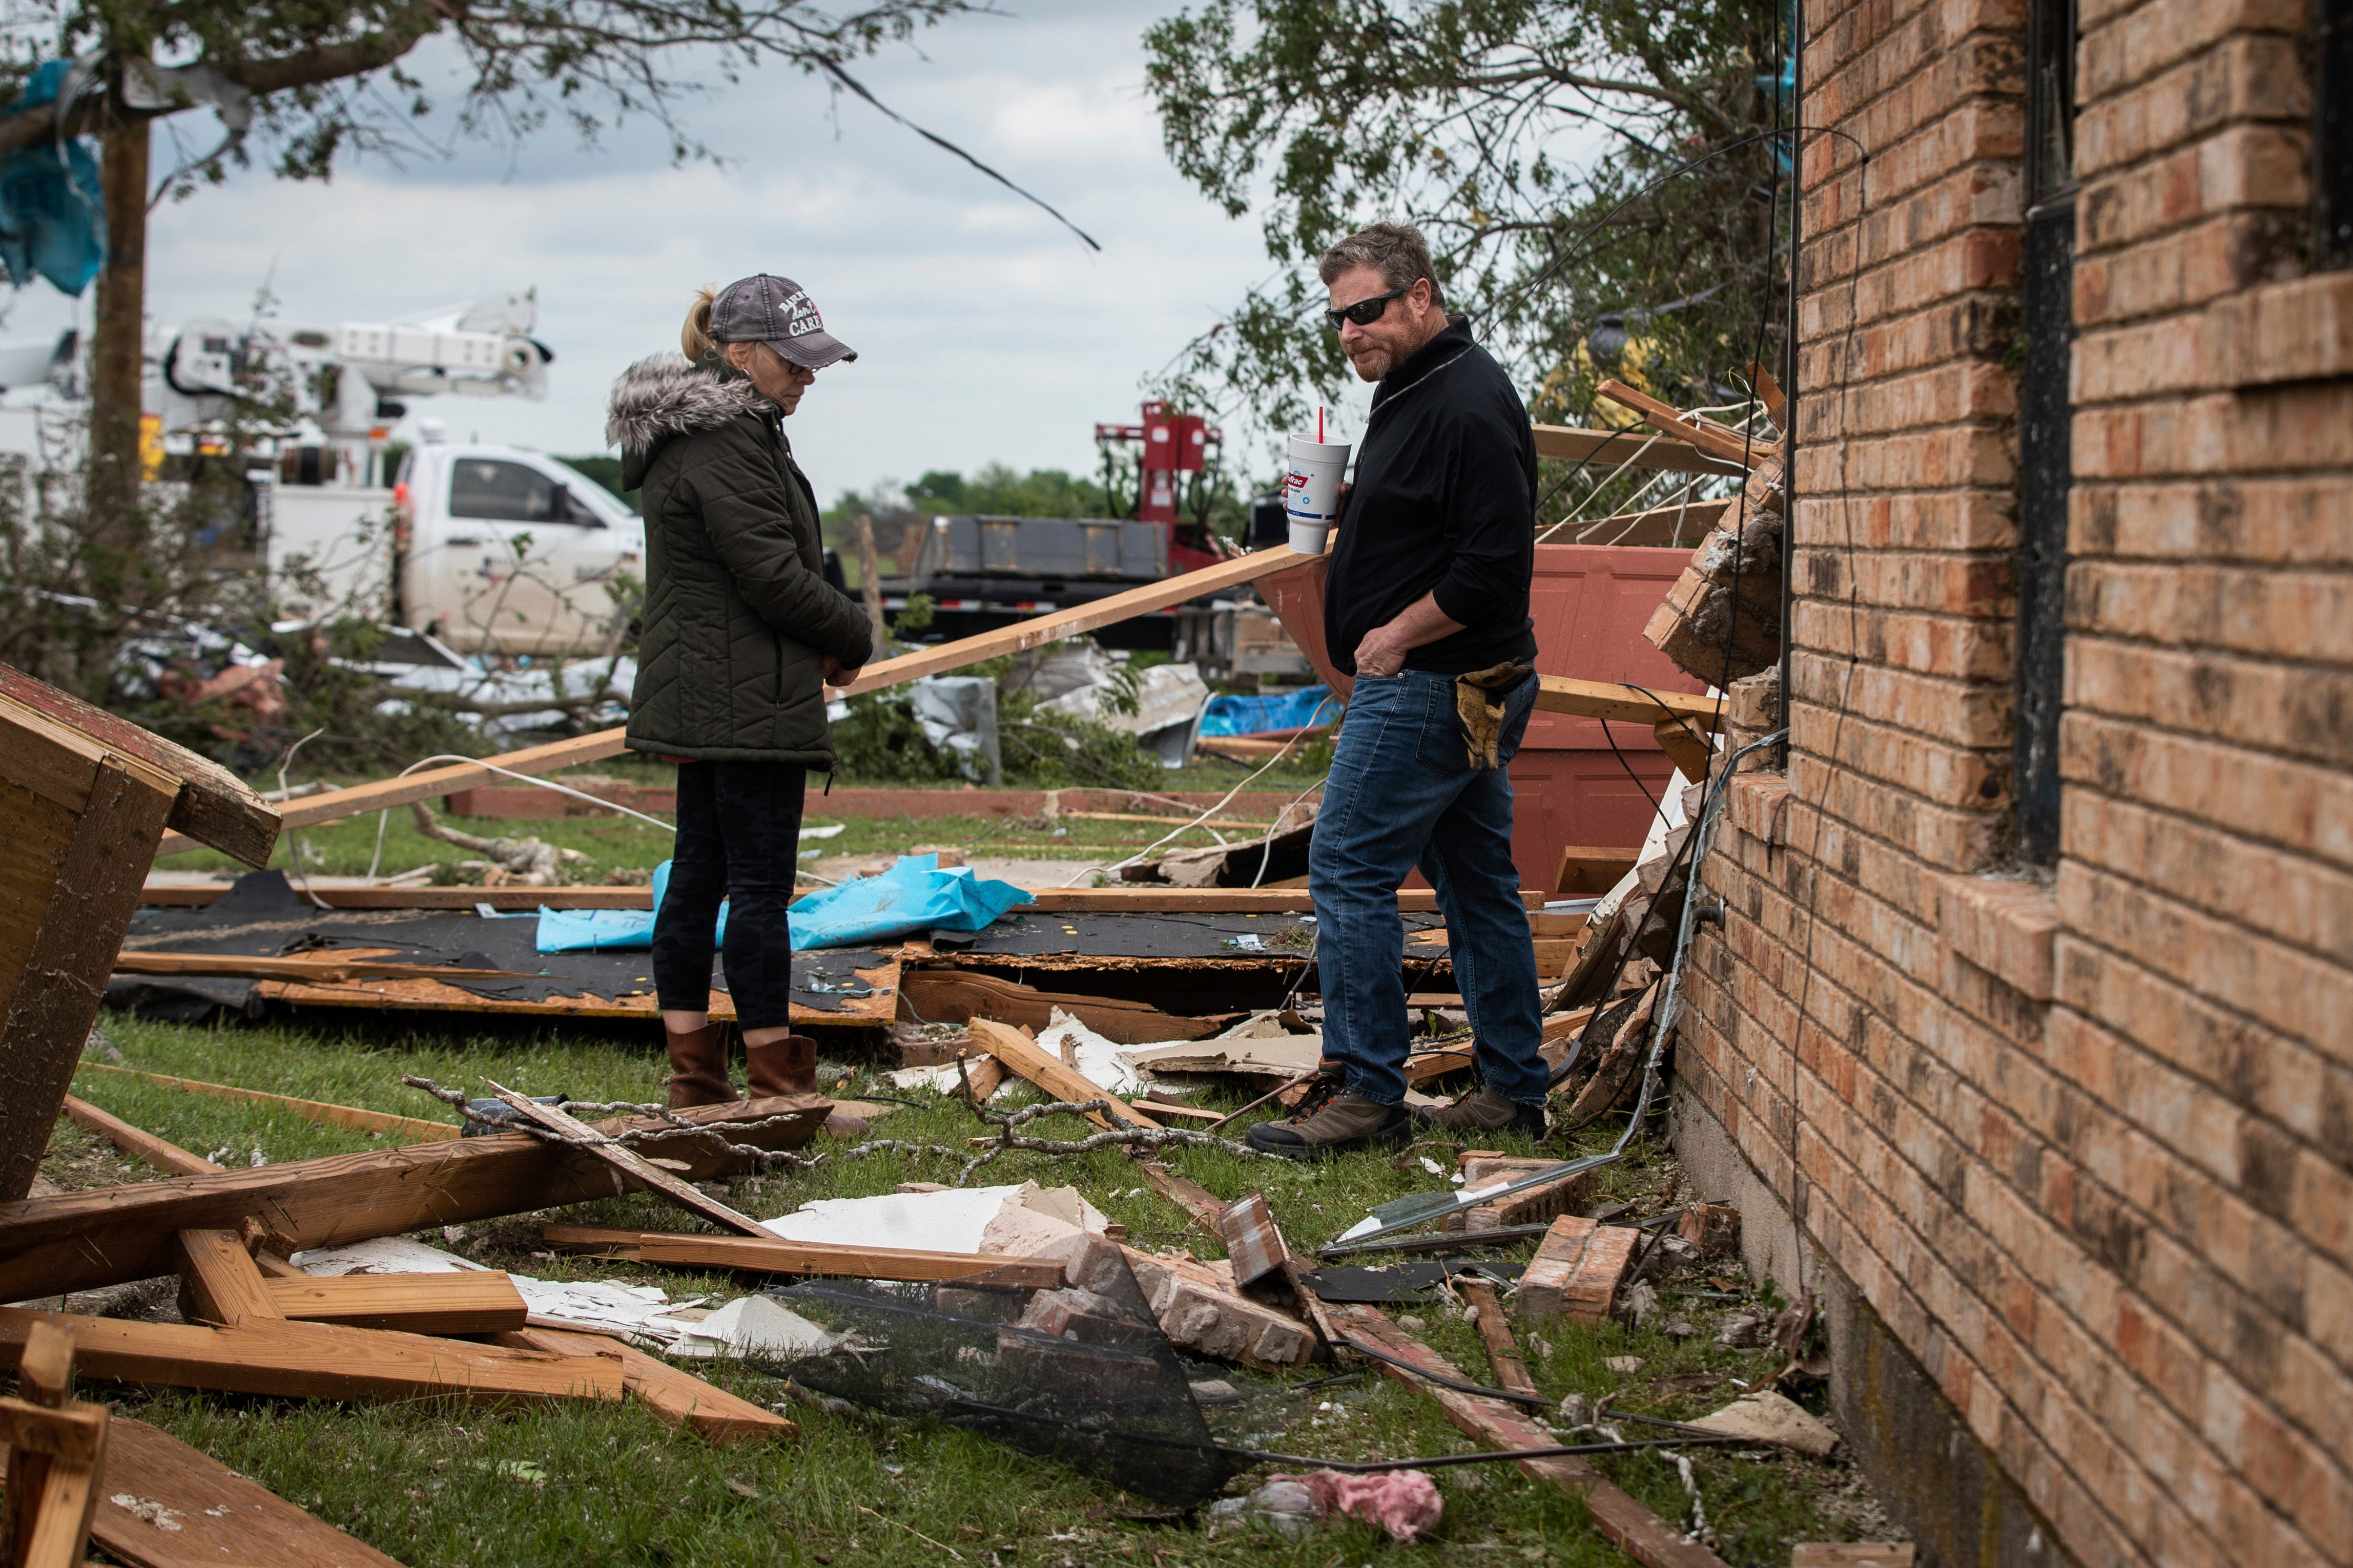 My first new house in 40 years and it s gone : Severe thunderstorms, tornadoes cause heavy damage across South; at least 3 dead